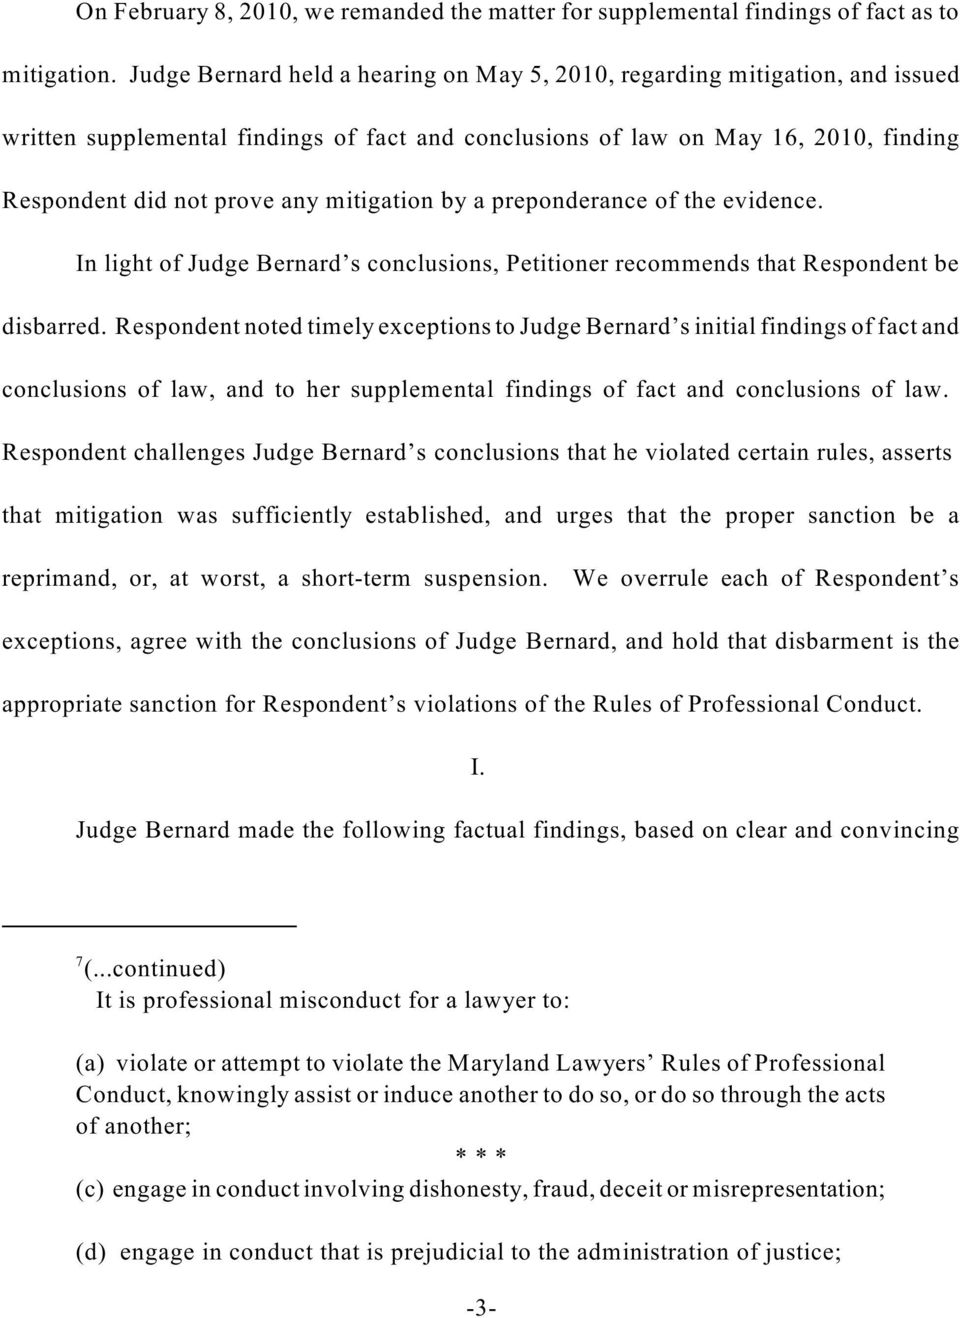 mitigation by a preponderance of the evidence. In light of Judge Bernard s conclusions, Petitioner recommends that Respondent be disbarred.